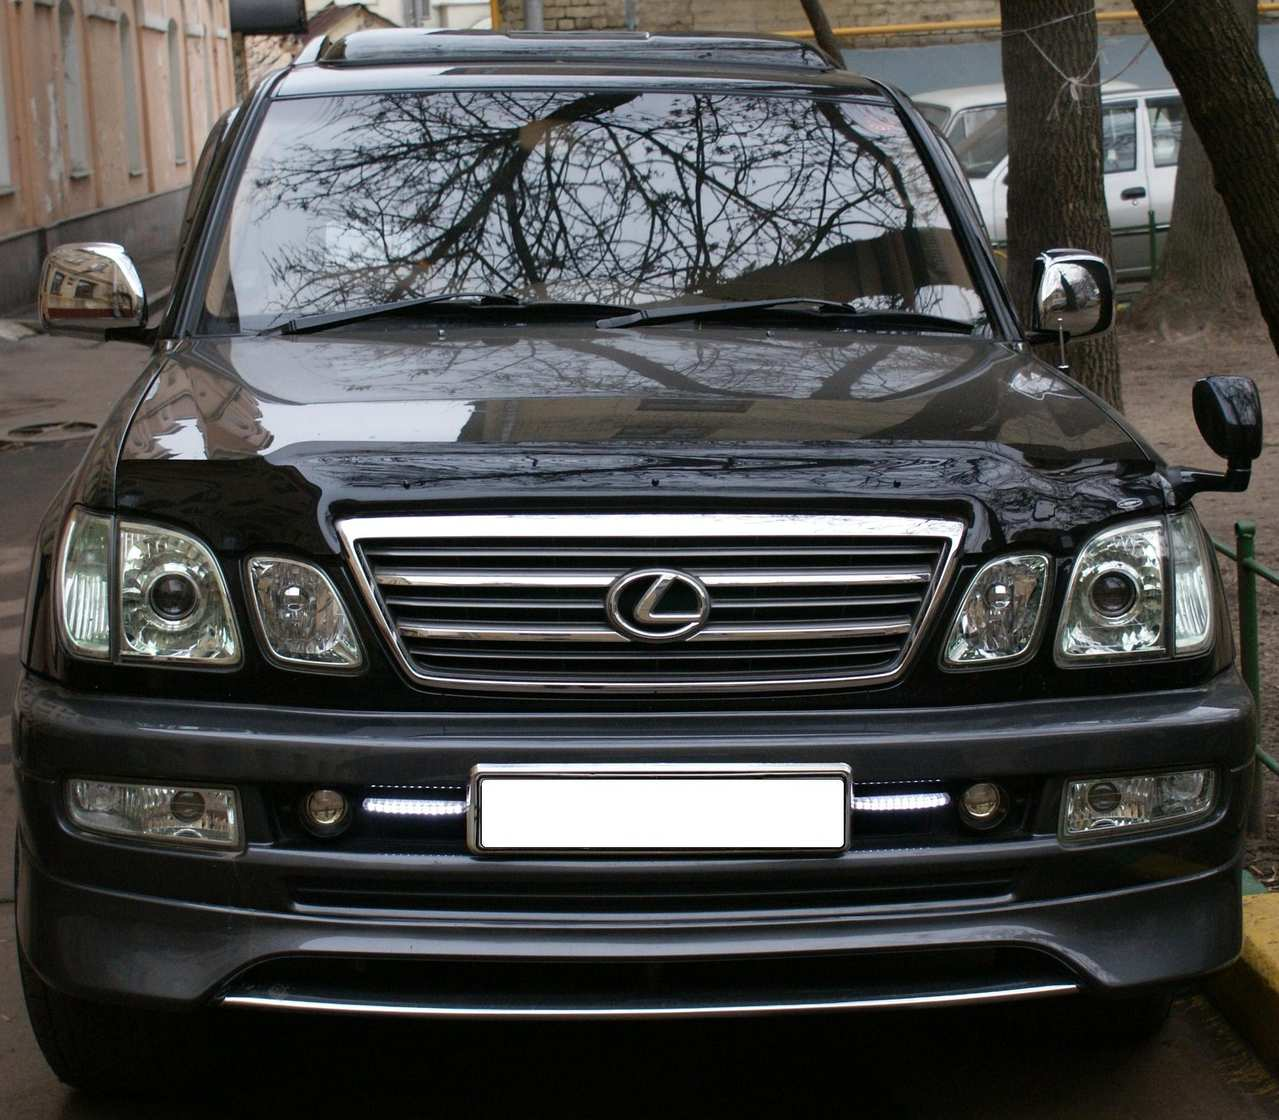 2003 Toyota Land Cruiser Transmission: Used 2003 Toyota LAND Cruiser Cygnus Photos, 4700cc